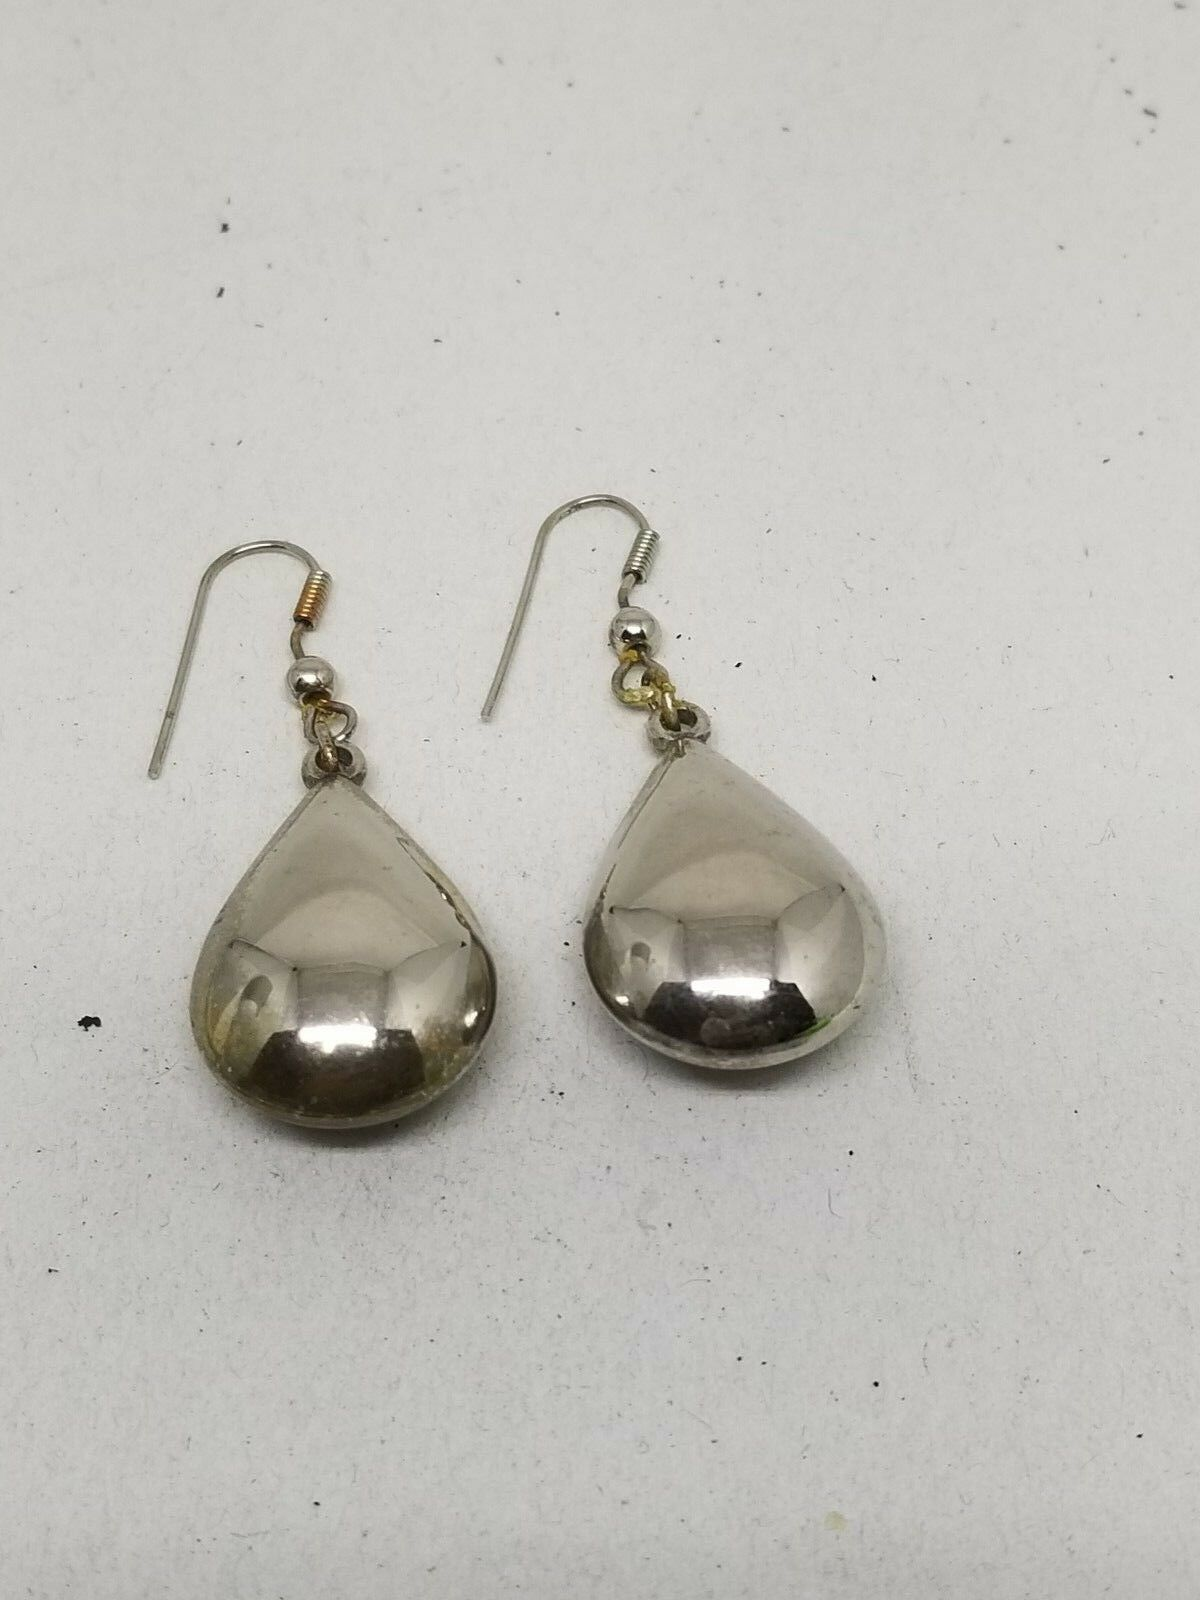 Silver Tone Large TearDrop Shaped Fish Hook Pierced Earrings